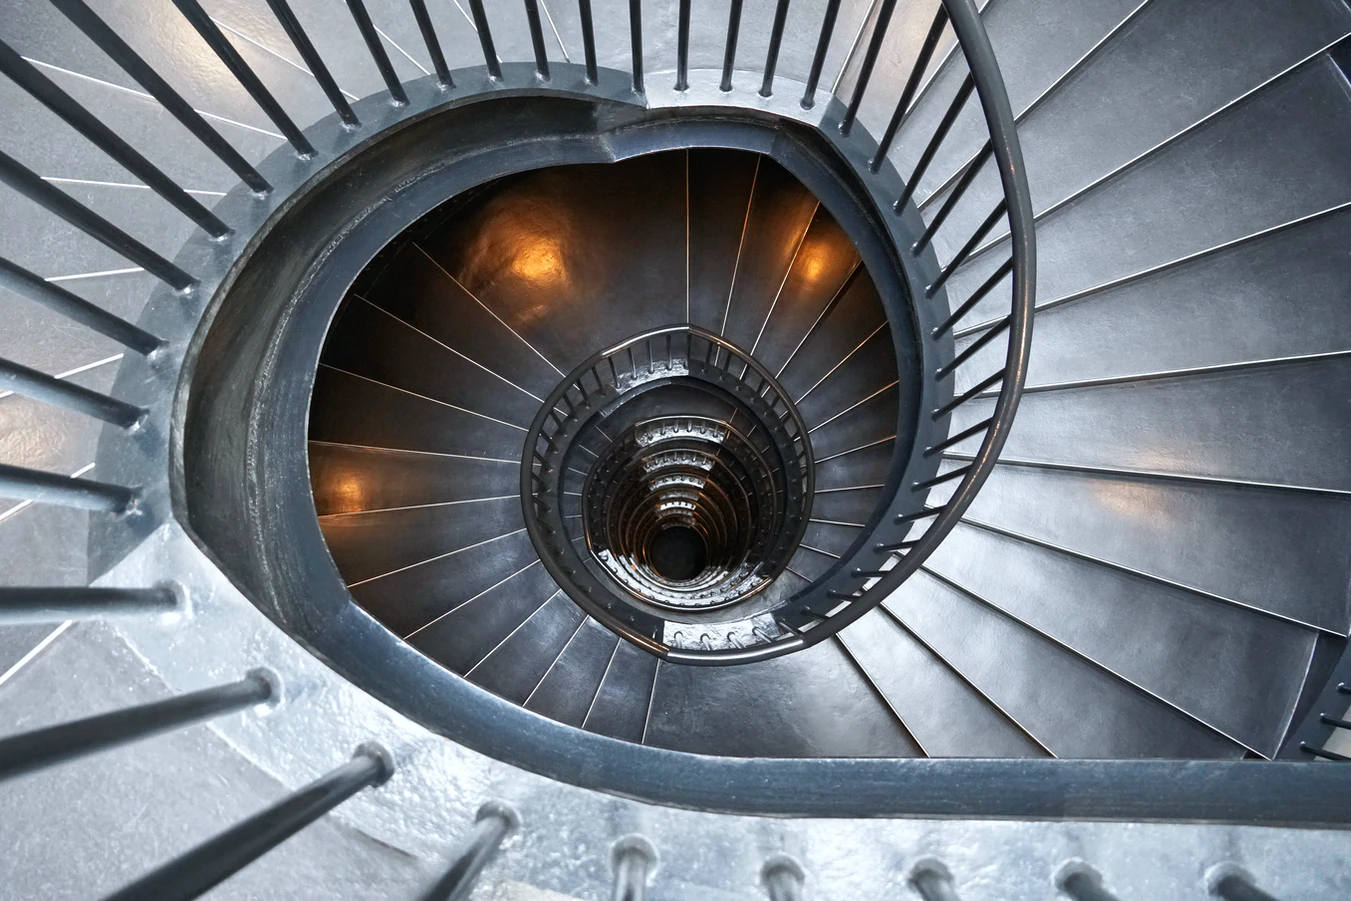 A seemingly endless spiral staircase as seen from above. Looking like an endless hole.